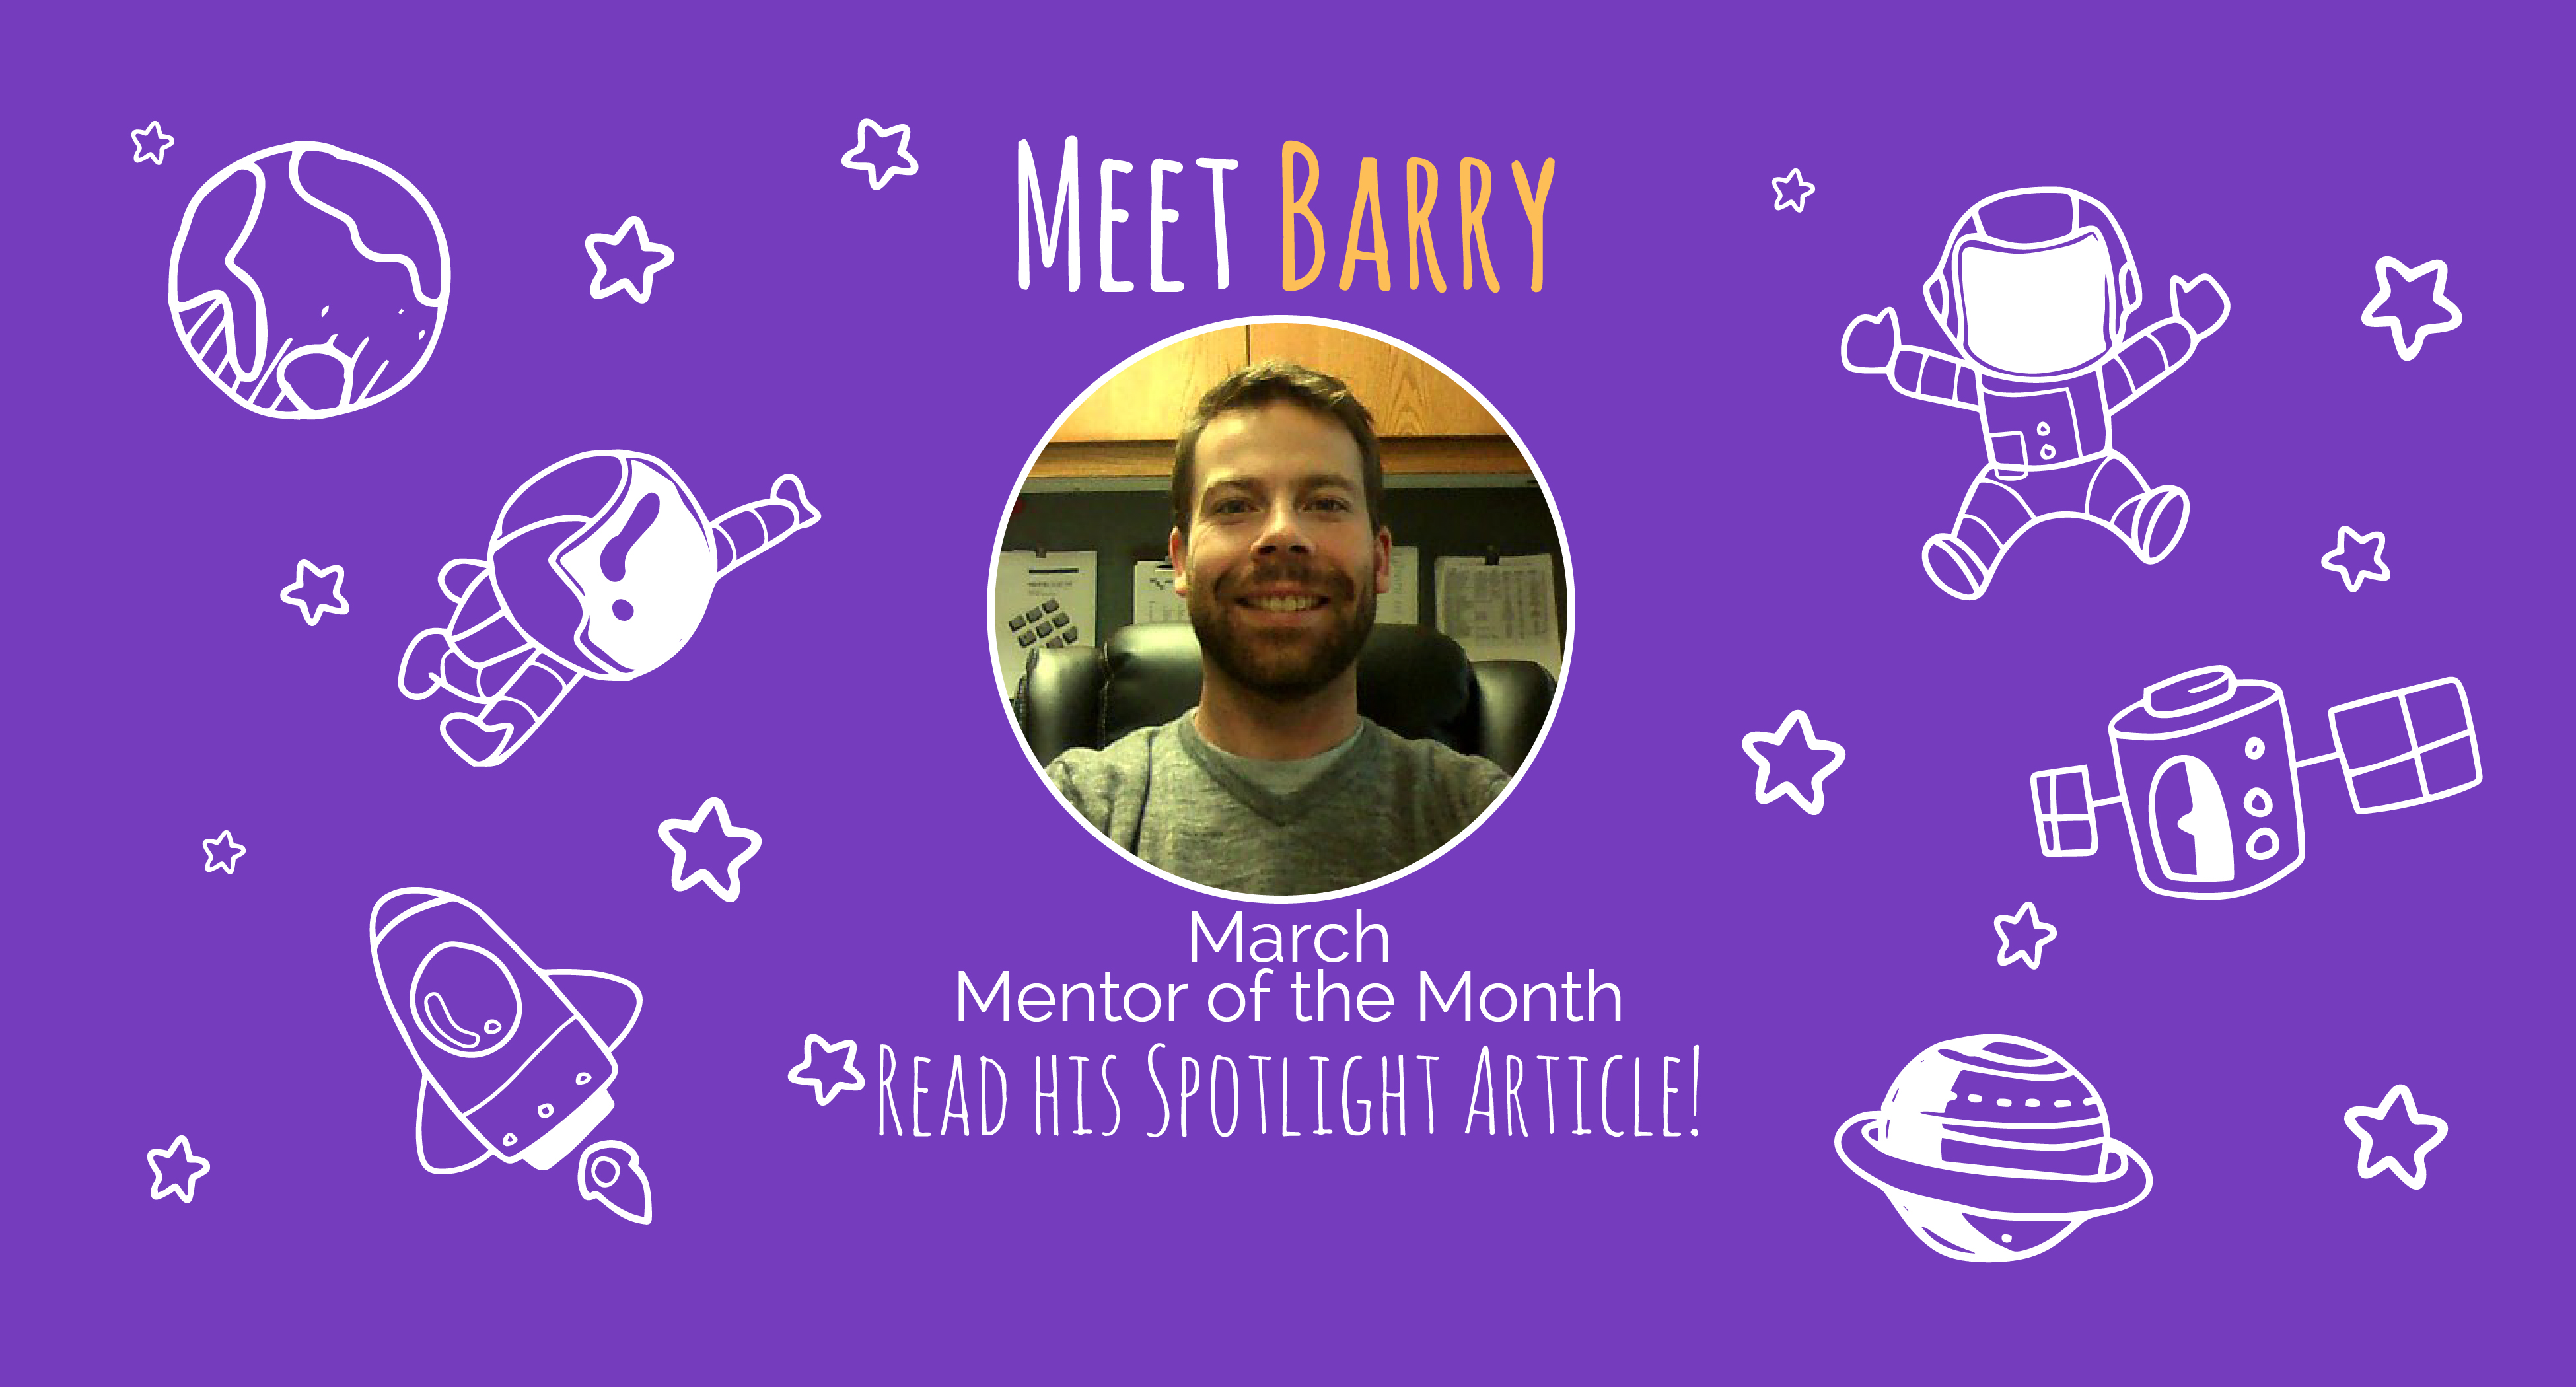 March Mentor of the Month Banner